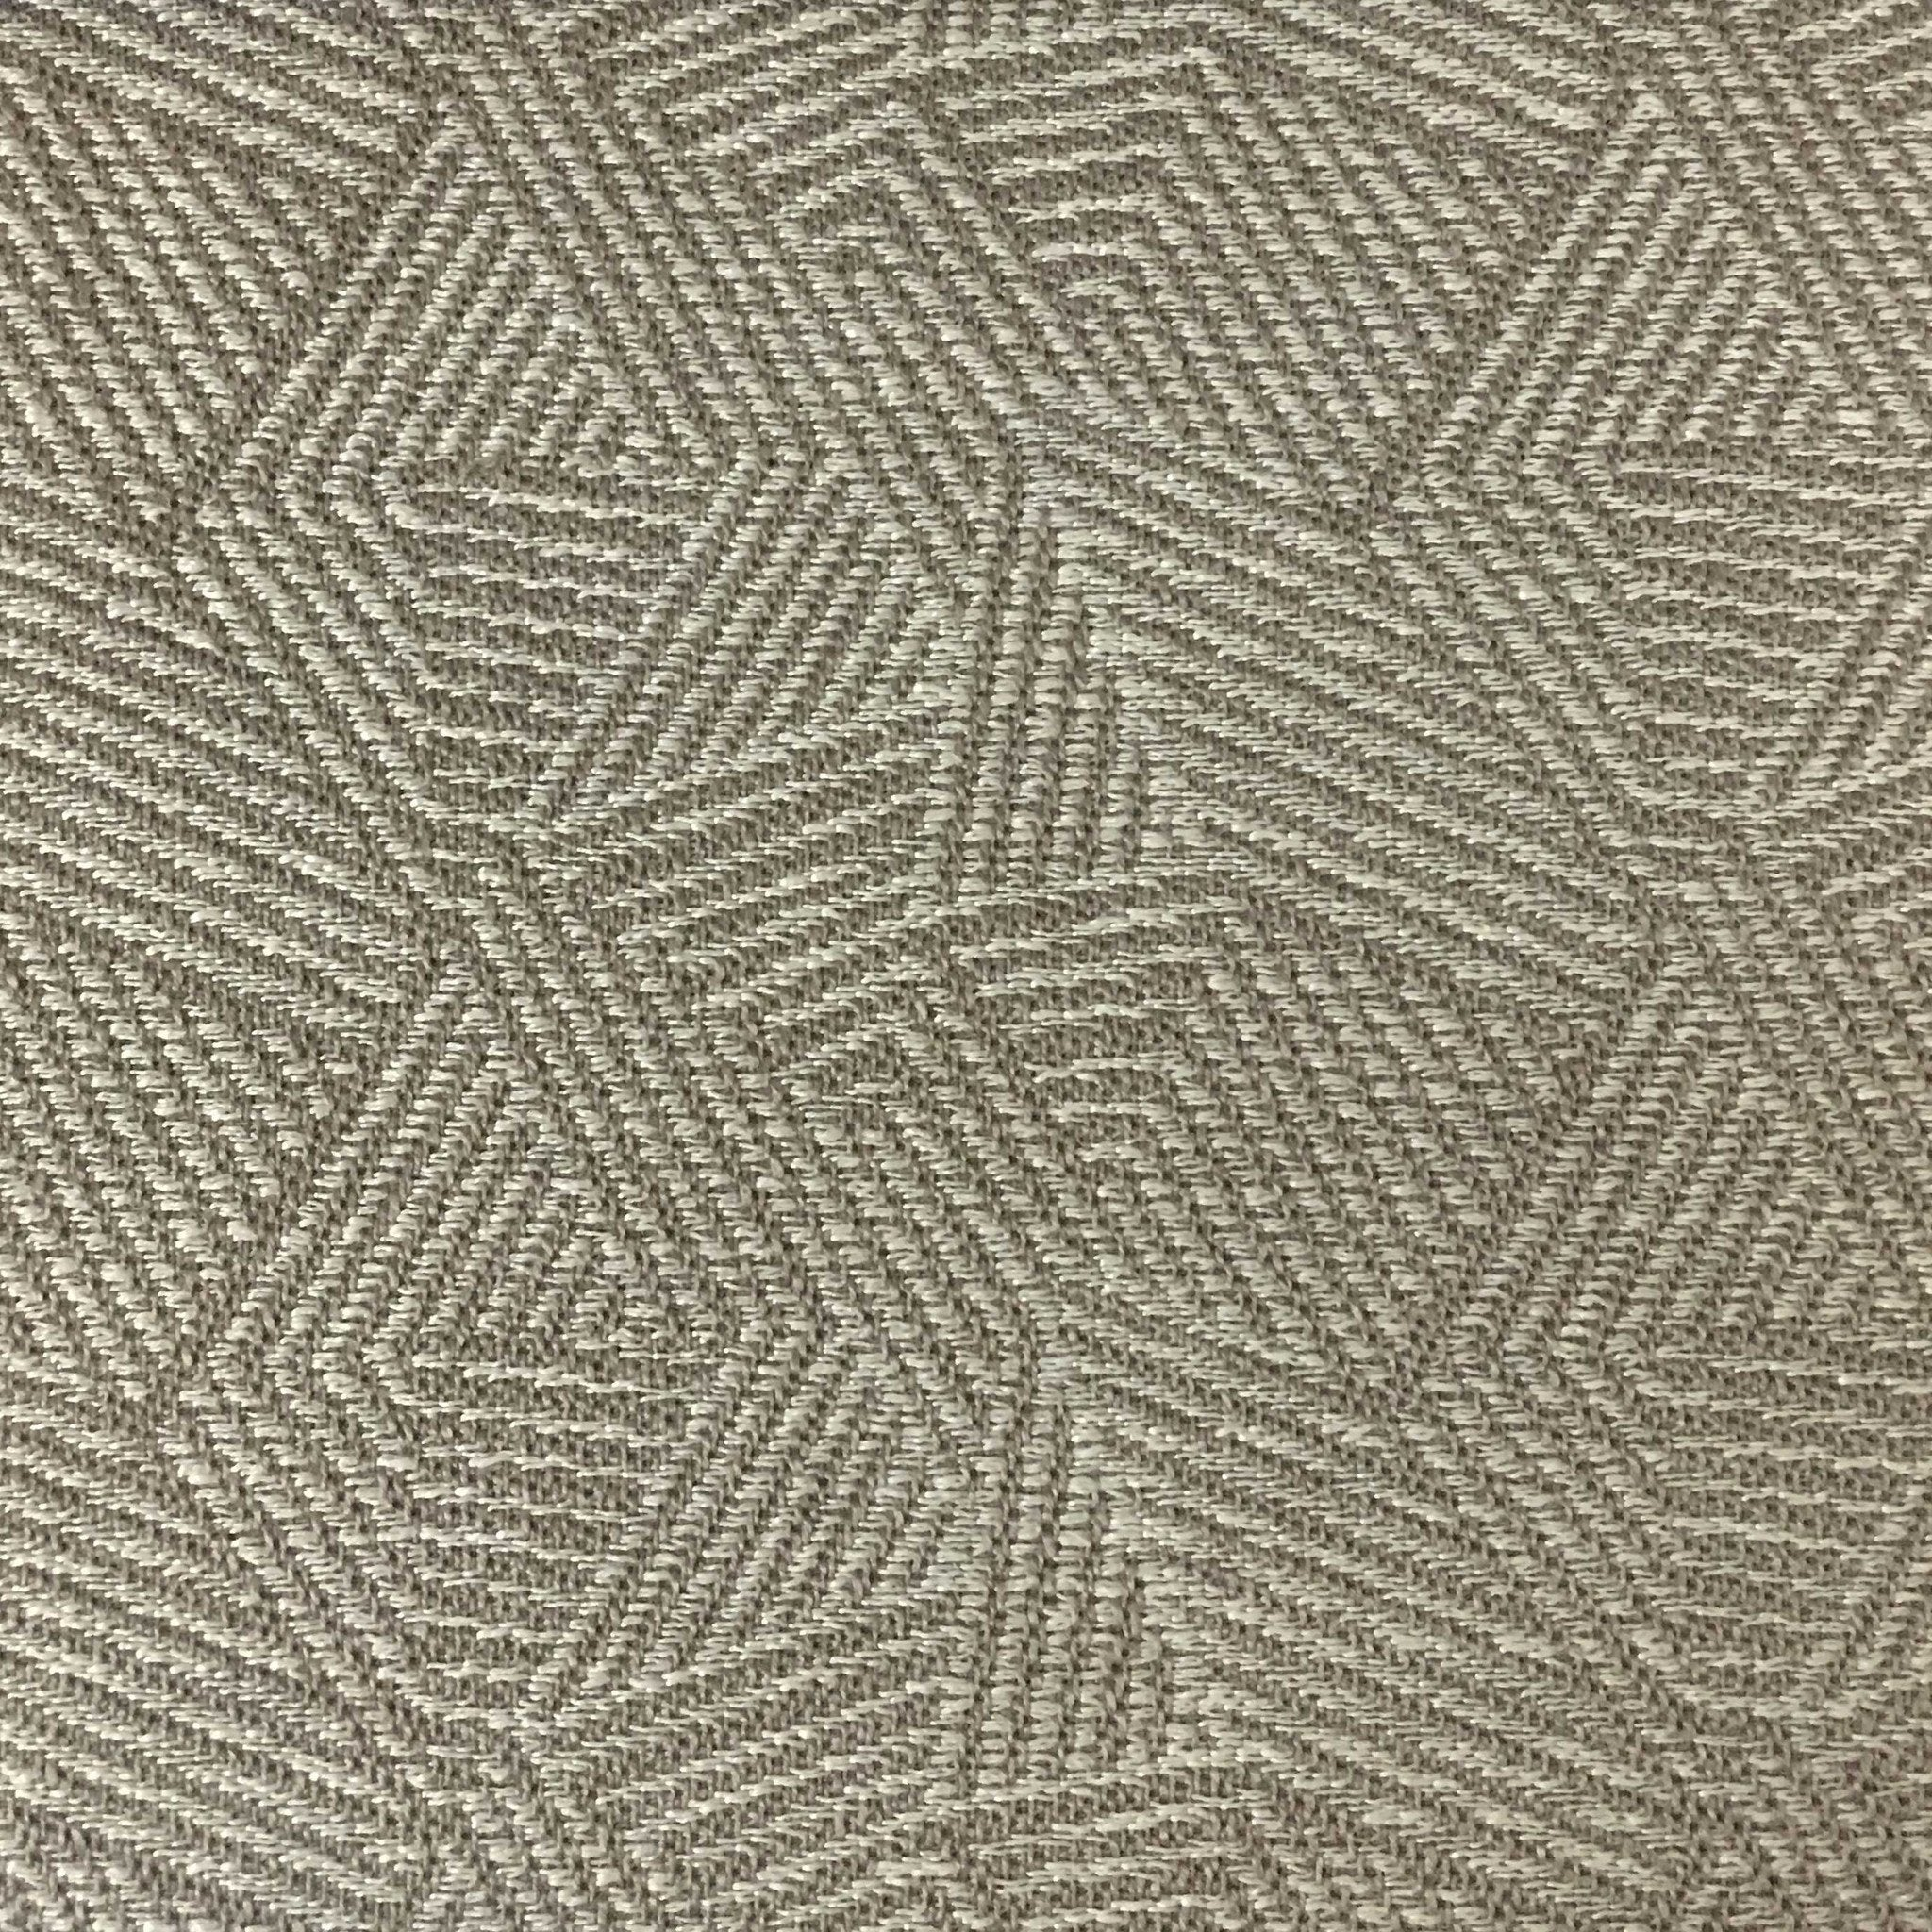 ... Enford   Jacquard Fabric Woven Texture Designer Pattern Upholstery  Fabric By The Yard   Available In ... Part 46